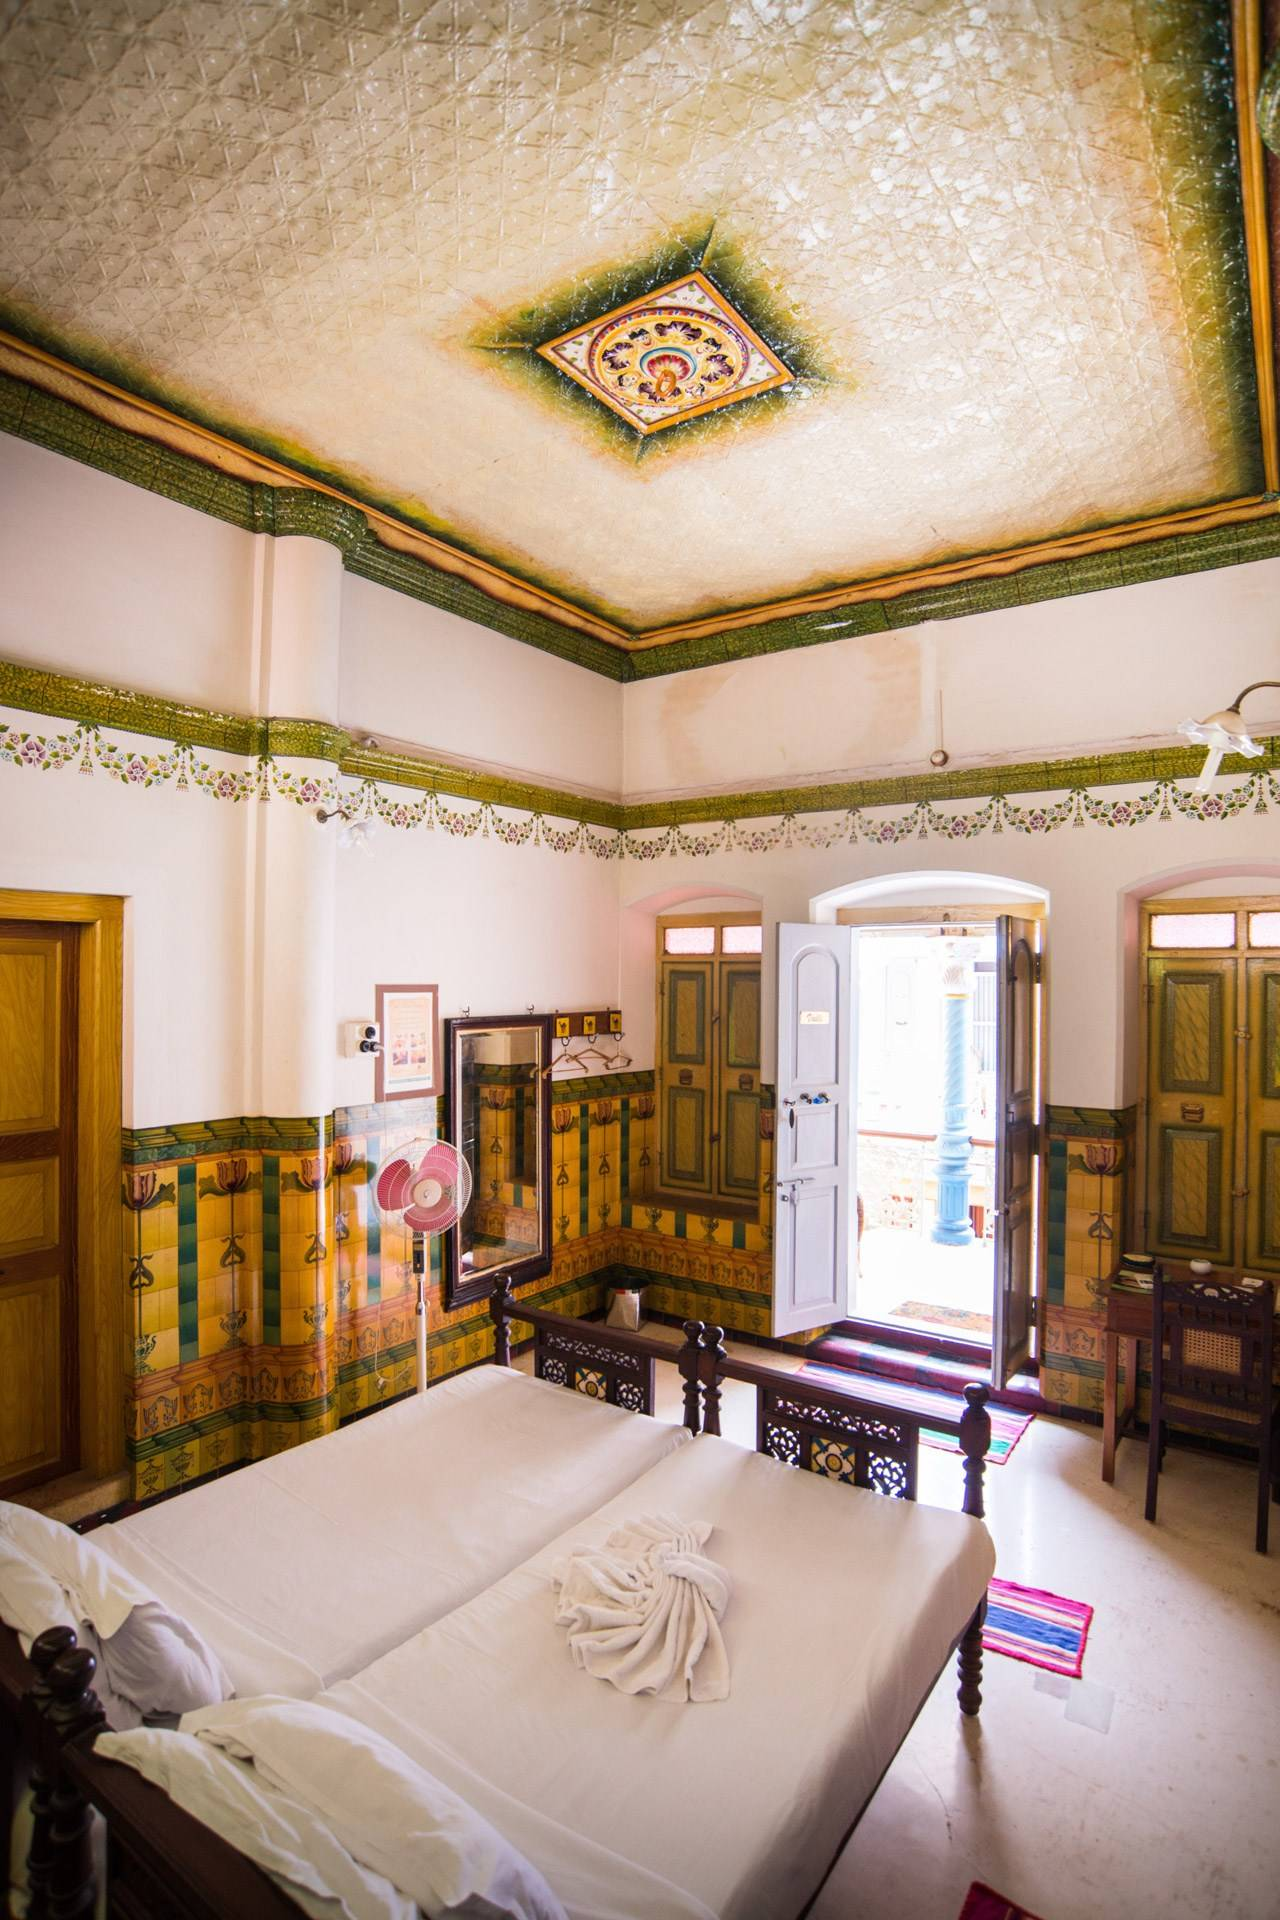 Tamil Nadu, India | Best hotels, things to do and what to